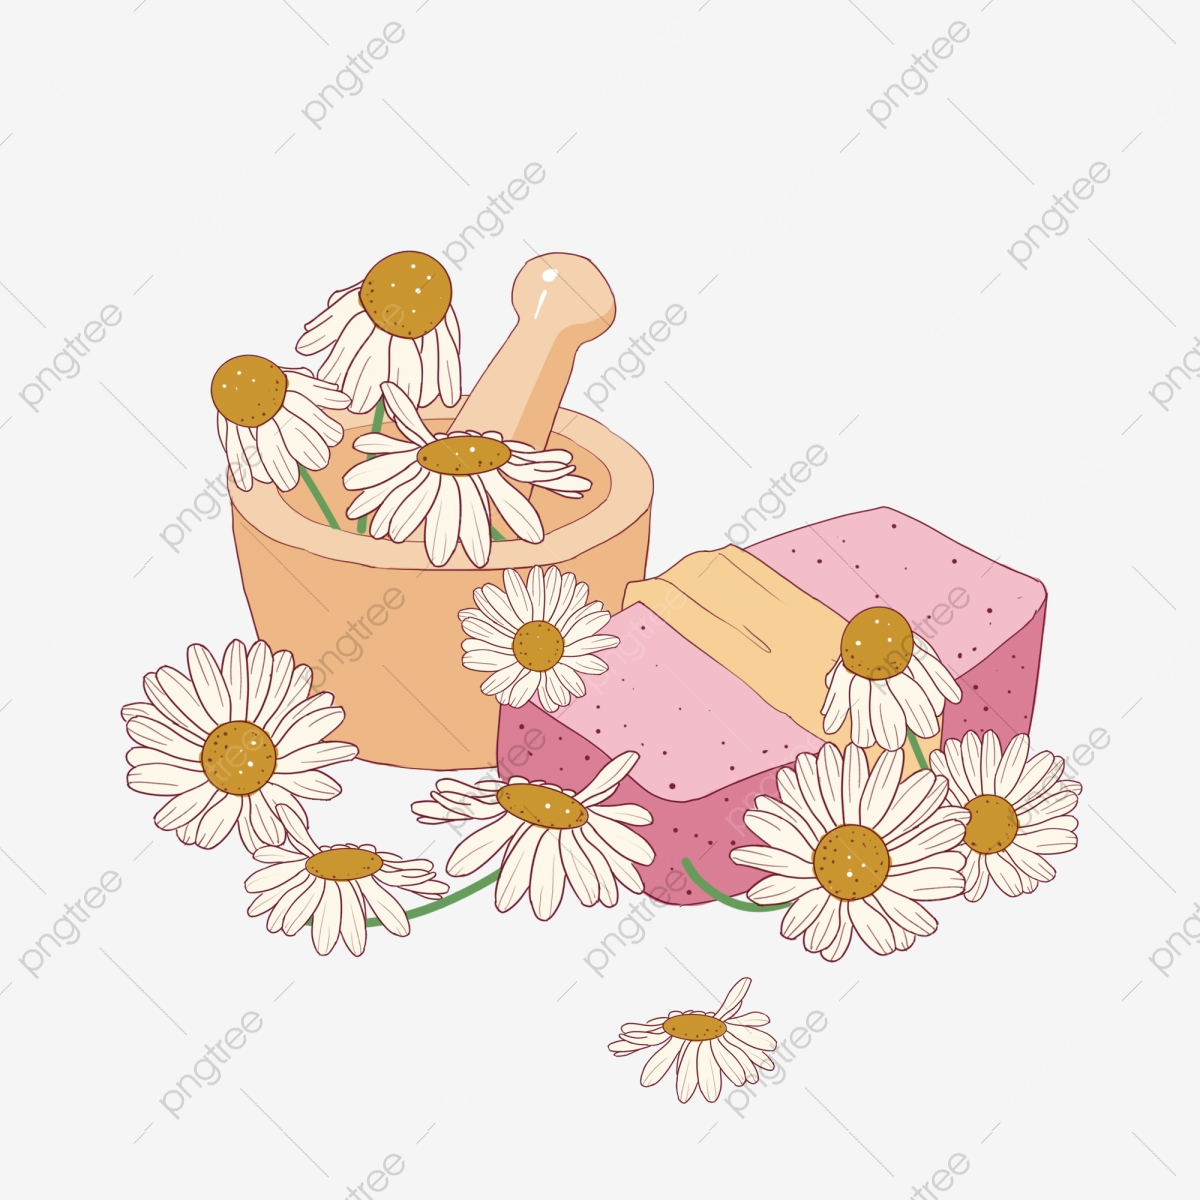 digital image of spa candles | Clipart Panda - Free Clipart Images